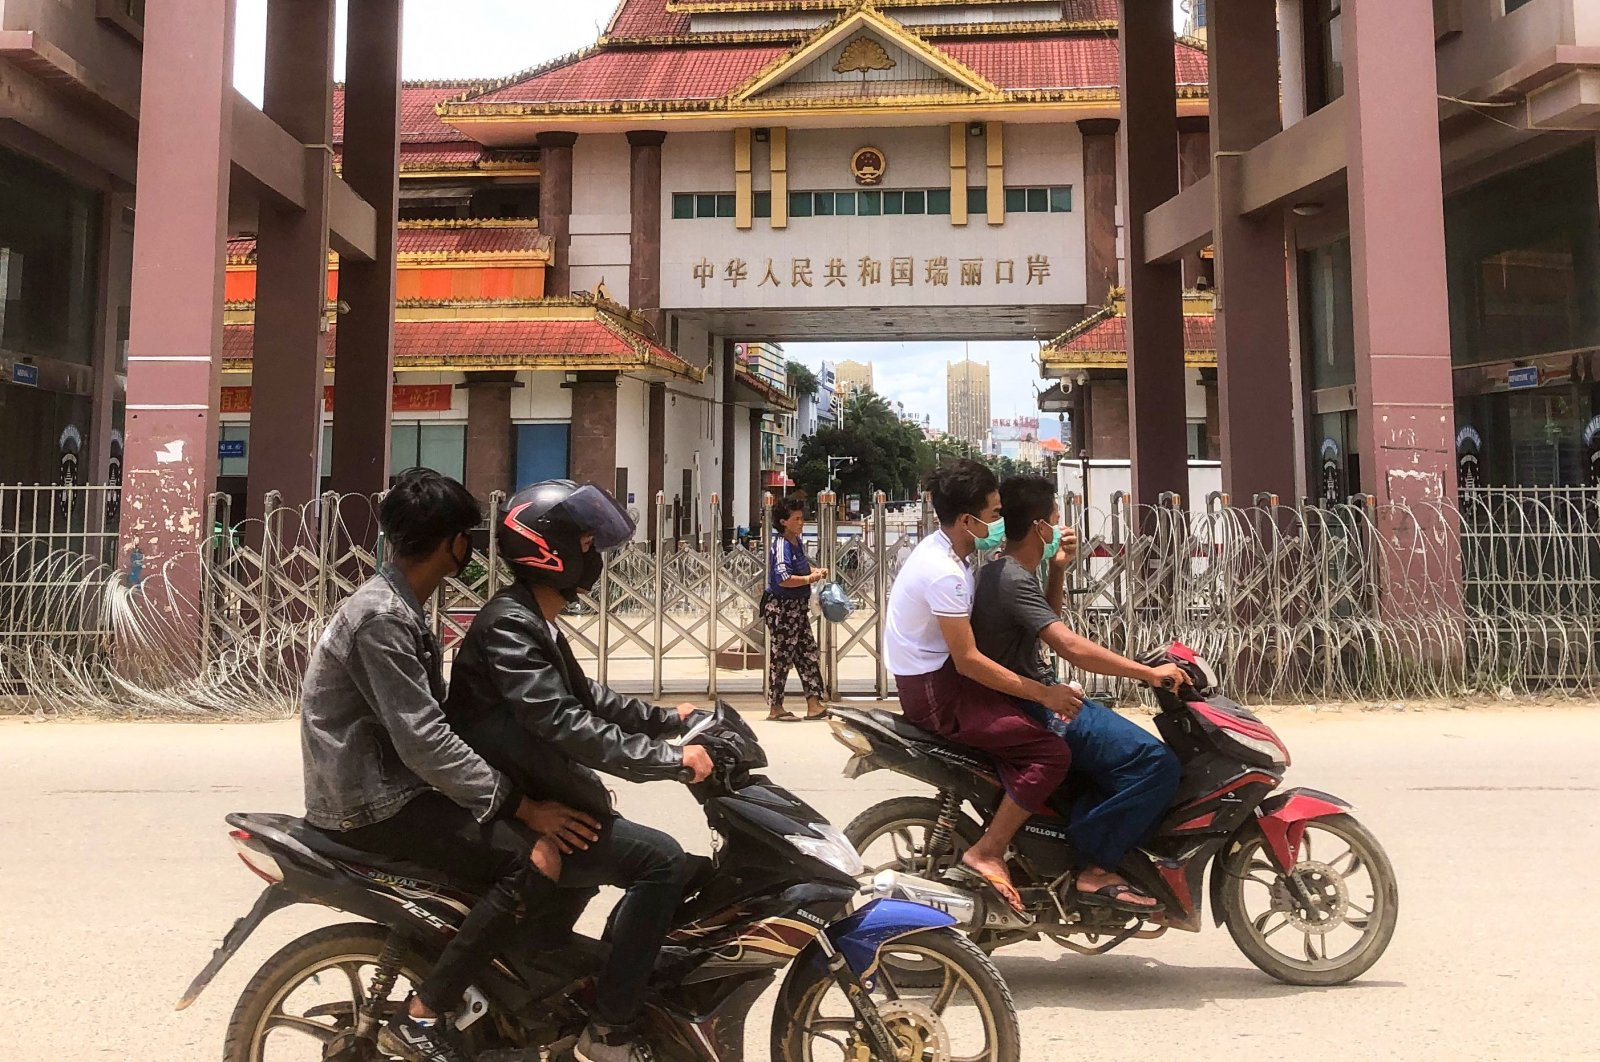 Motorists pass the China-Myanmar border gate in Muse in Shan state, as the Chinese city of Ruili near the border with Myanmar imposed a lockdown and started mass testing after three coronavirus cases were reported, July 5, 2021. (AFP Photo)